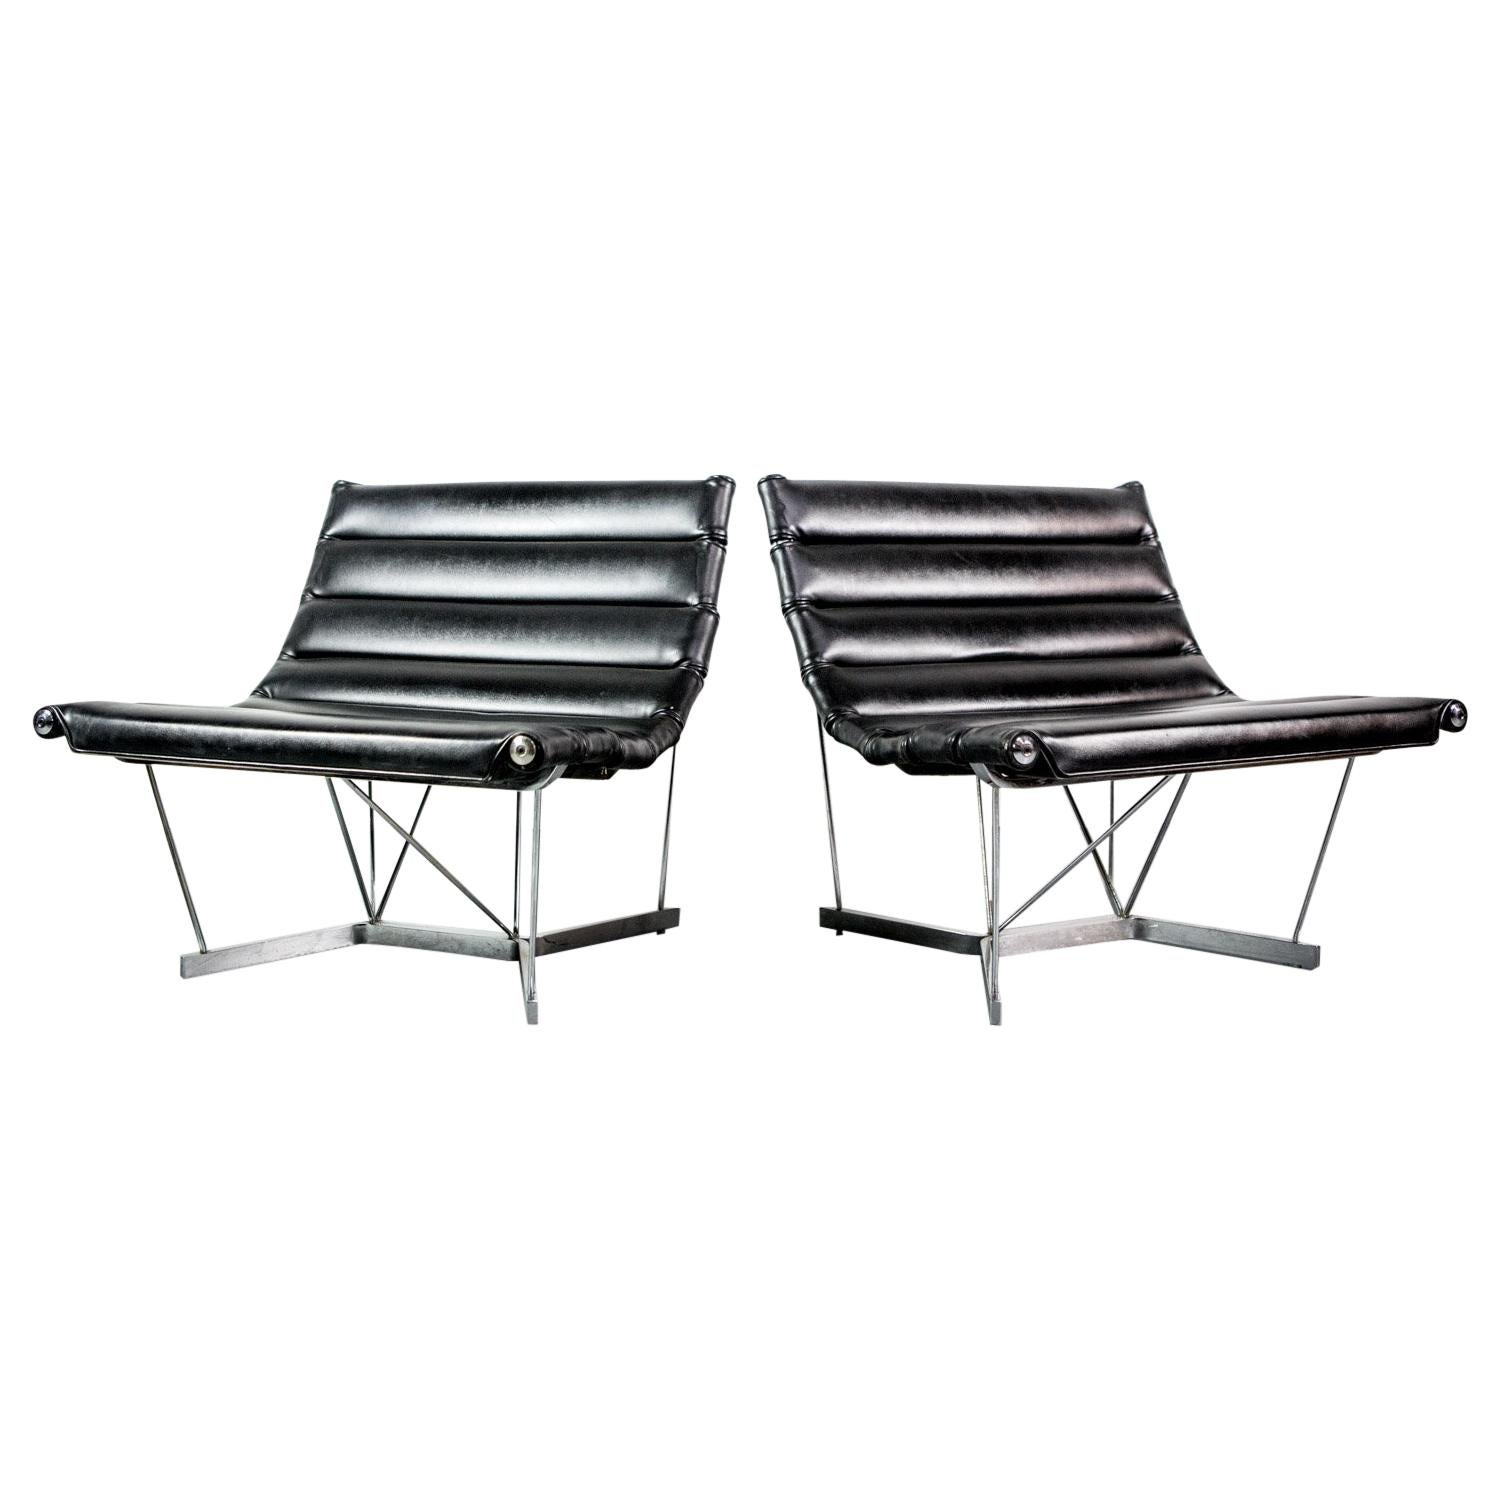 Rare Pair of Catenary Chairs by George Nelson for Herman Miller